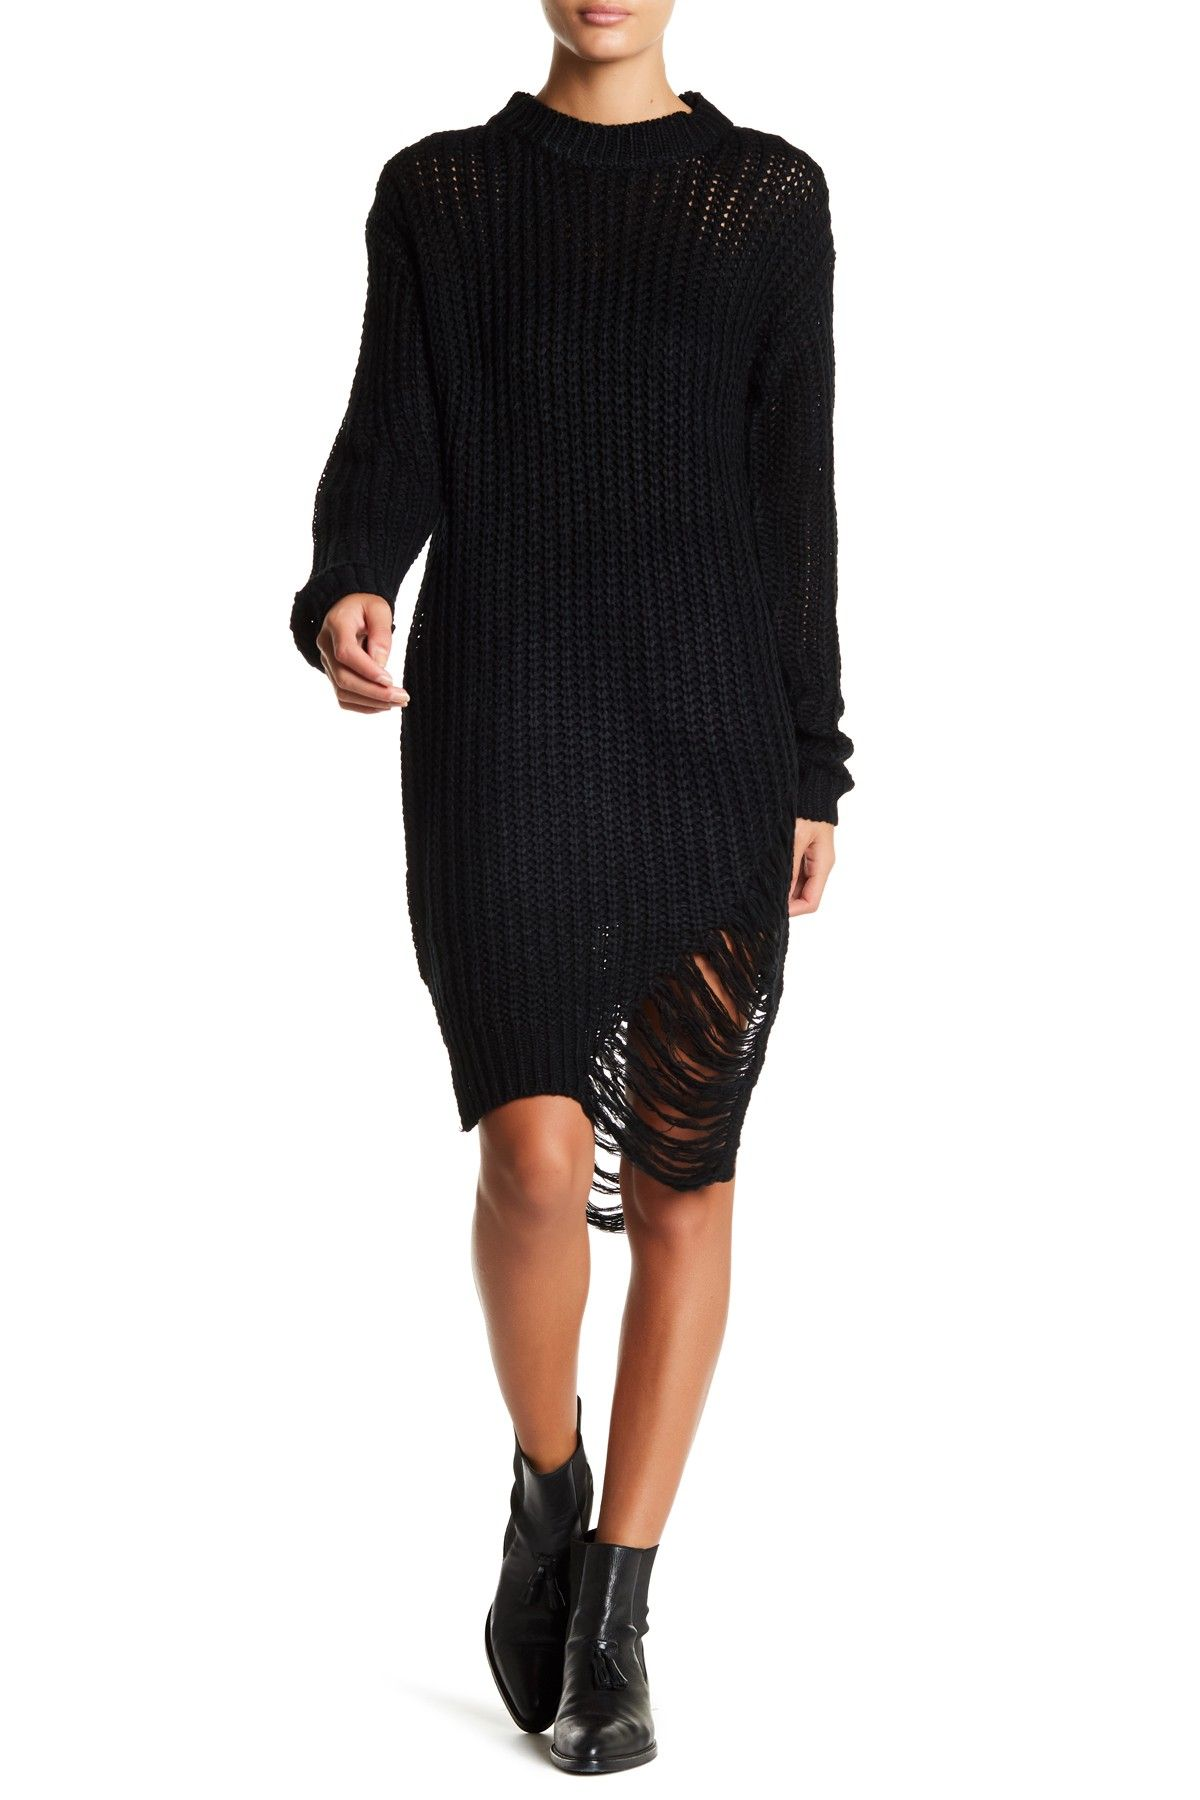 eecc22be40 Distressed Knit Sweater Dress by Solutions on  nordstrom rack ...